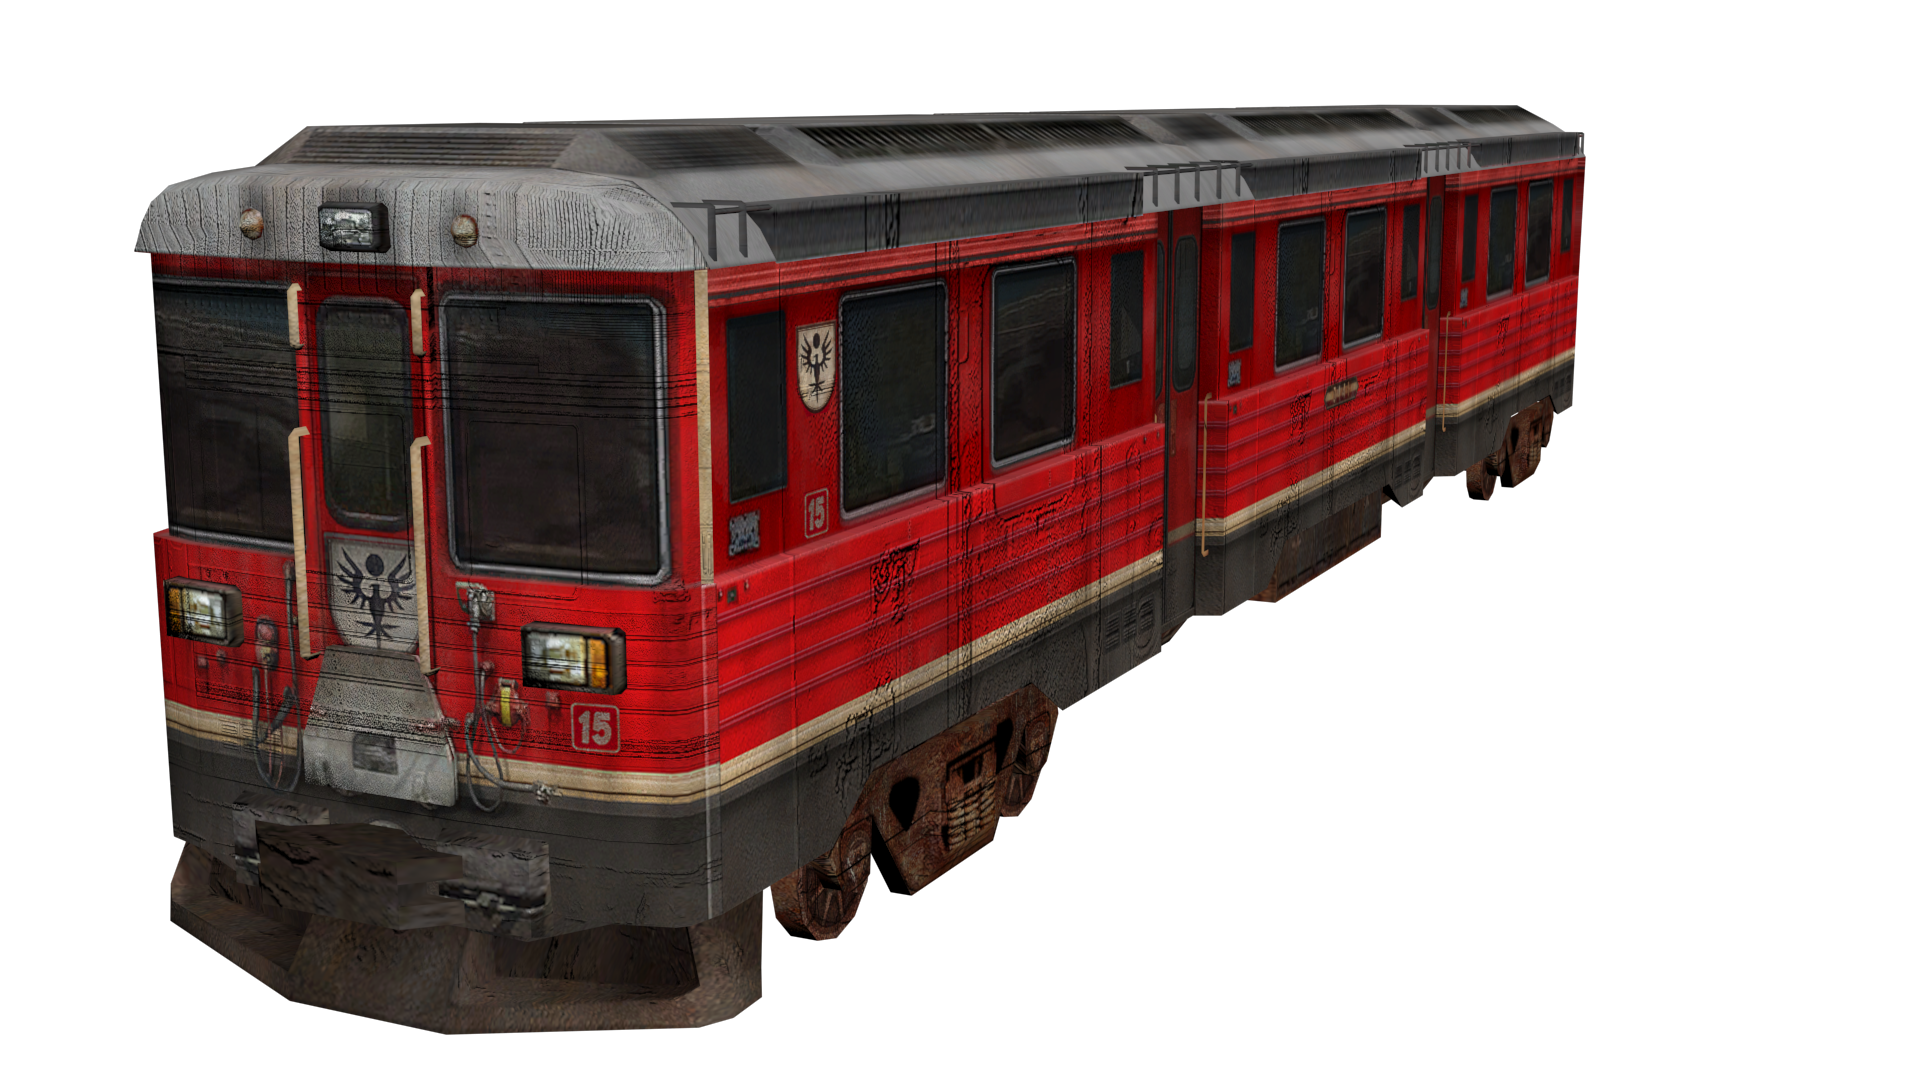 train png transparent train images pluspng #16167